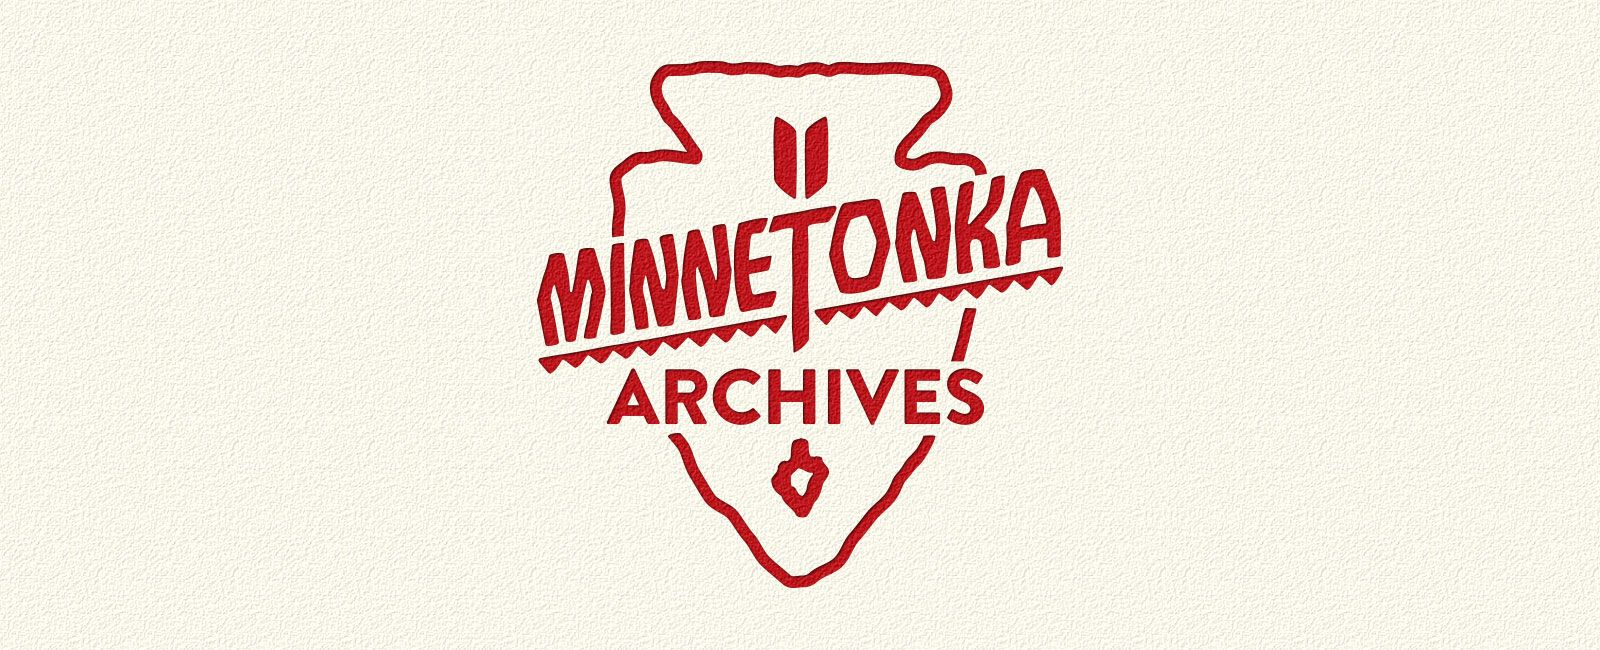 Wink Minneapolis | Business cards | Pinterest | Business cards and ...